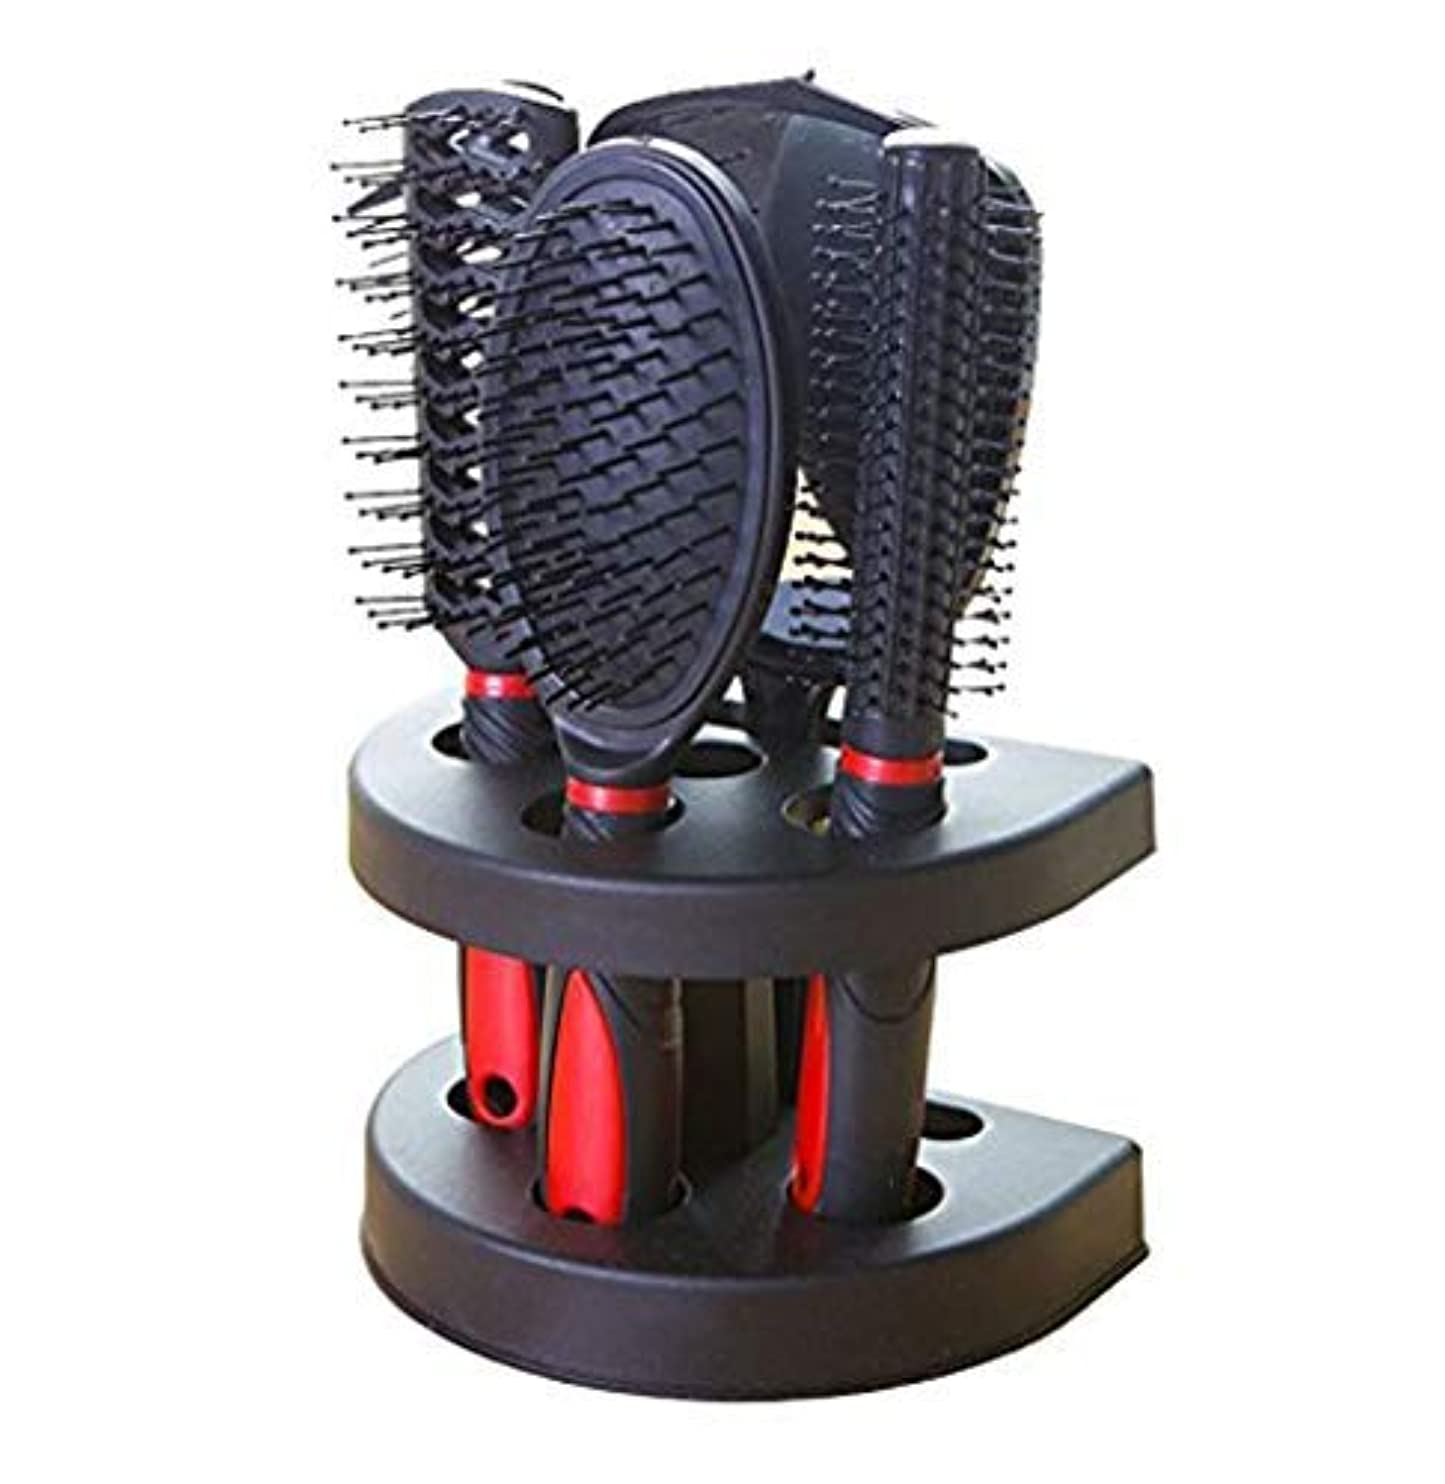 リンス暗黙スクラップブックHealthcom Hairs Combs Salon Hairdressing Styling Tool Hair Cutting Brushes Sets Dressing Comb Kits,Set of 5 [並行輸入品]